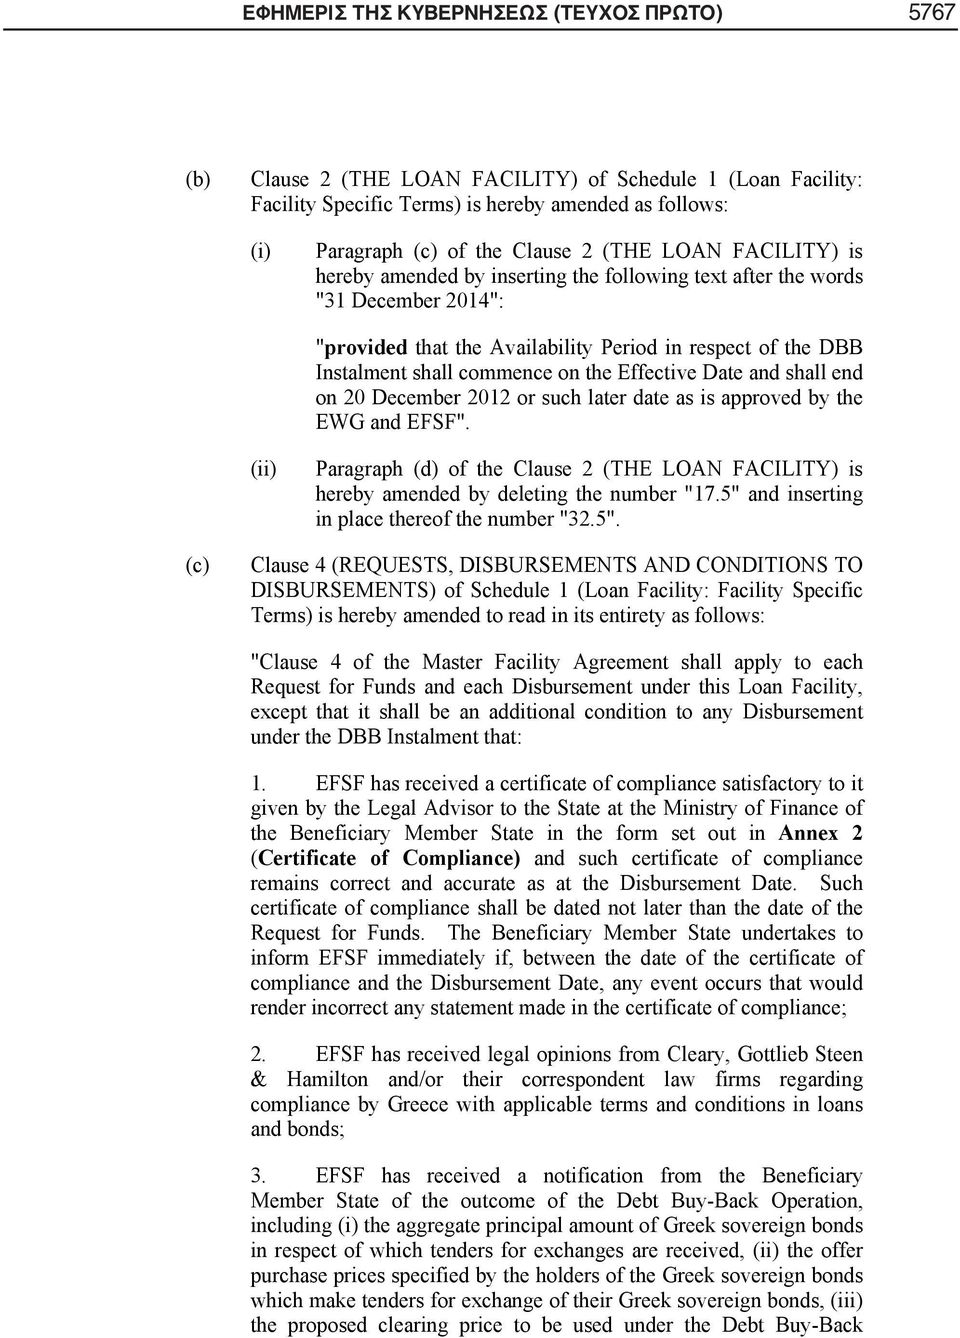 "Effective Date and shall end on 20 December 2012 or such later date as is approved by the EWG and EFSF"" (ii) Paragraph (d) of the Clause 2 (THE LOAN FACILITY) is hereby amended by deleting the number"